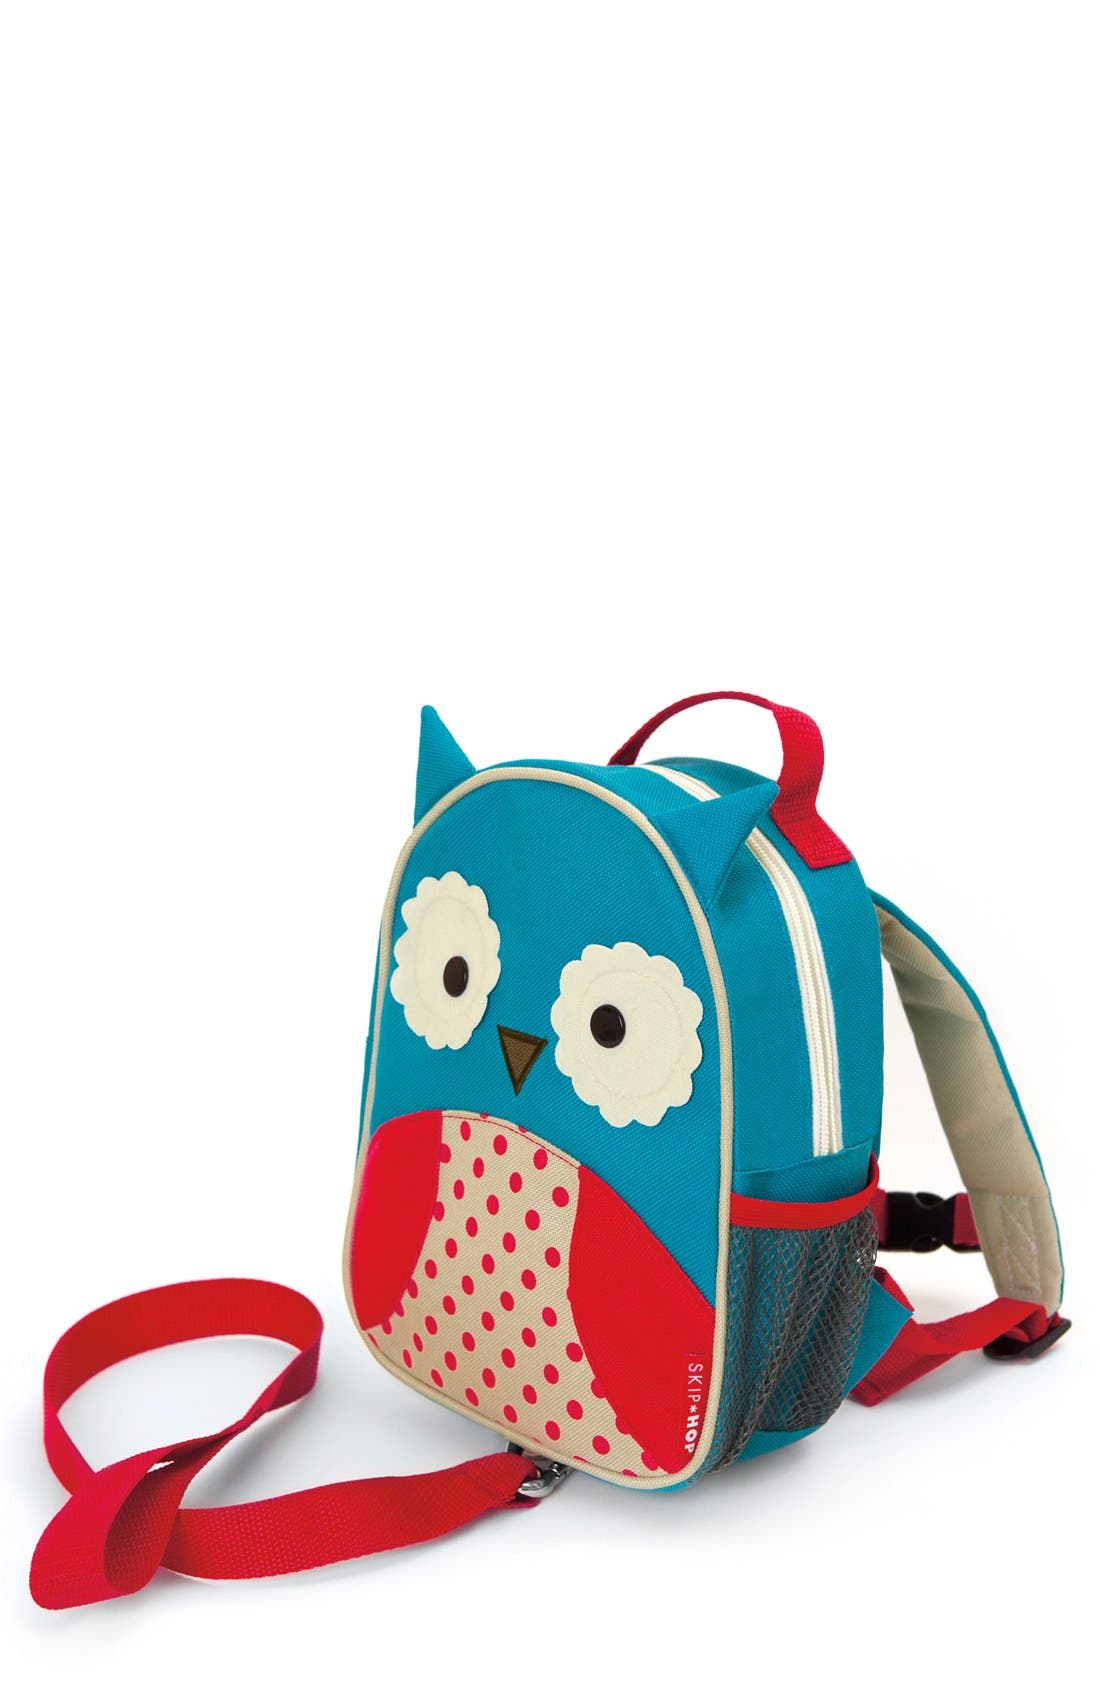 Monkey Zoo Safety Harness Backpack,                             Main thumbnail 1, color,                             OWL